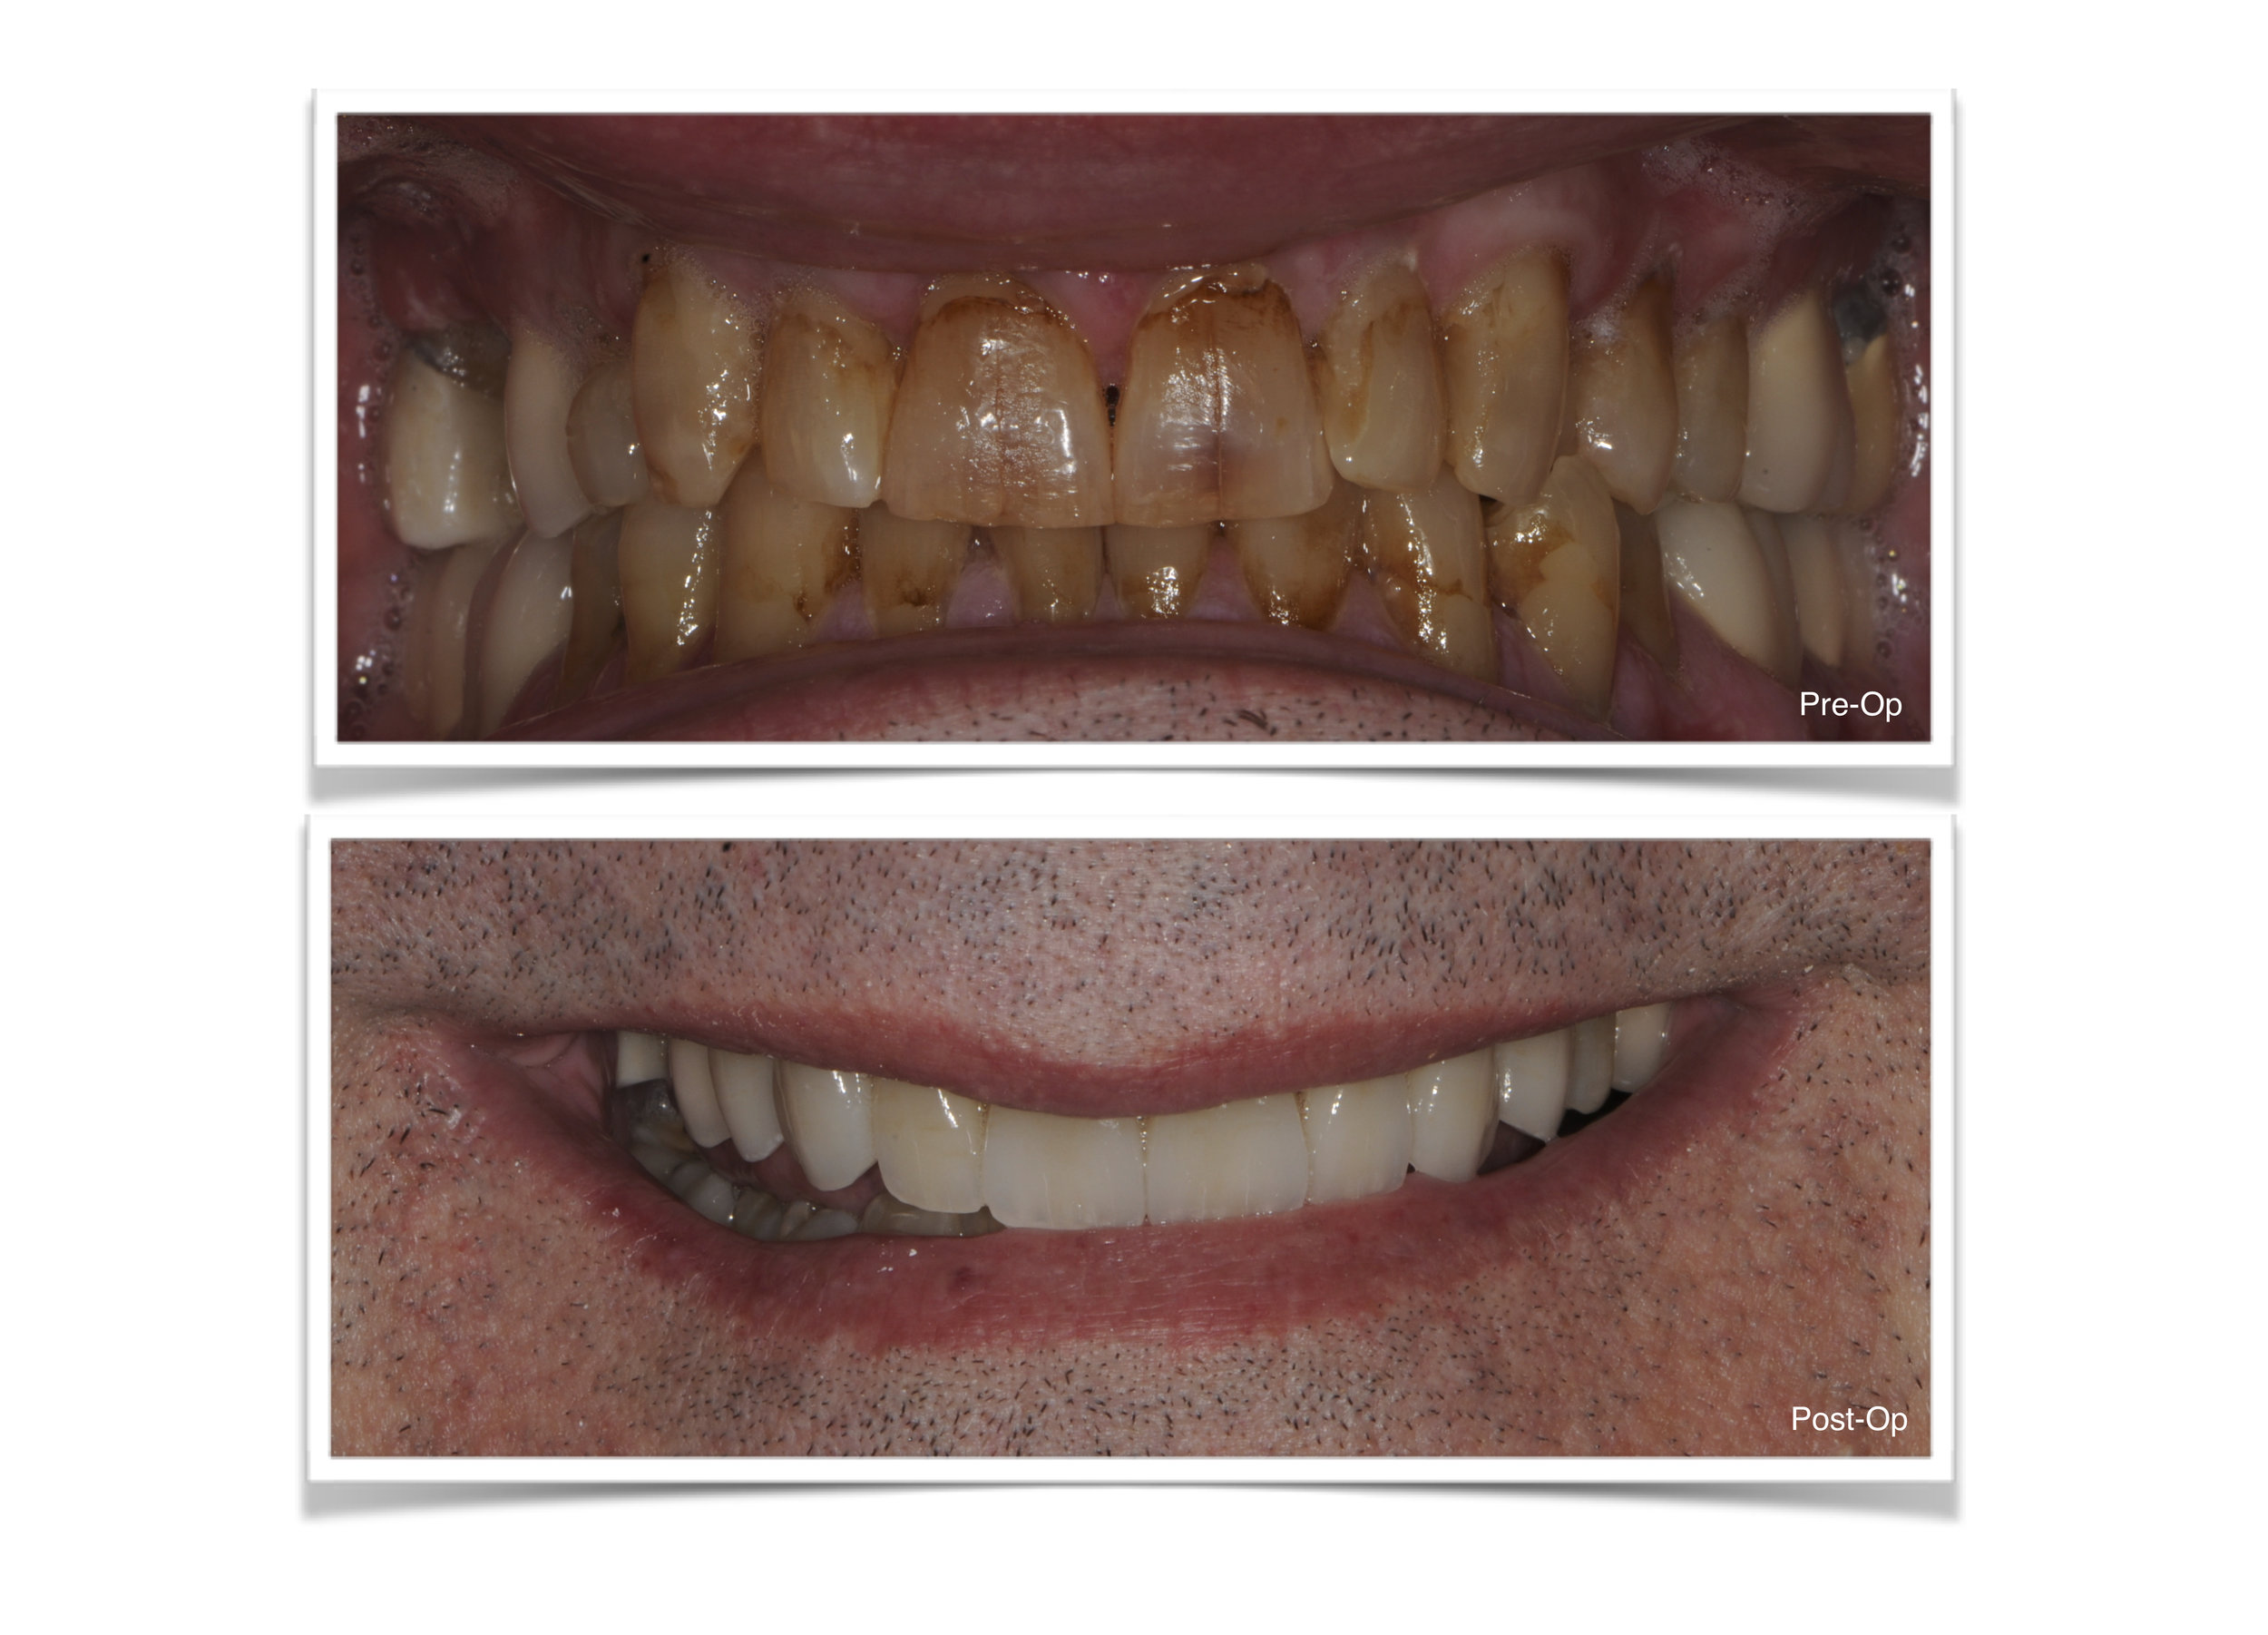 Ceramic Crowns on Front Teeth